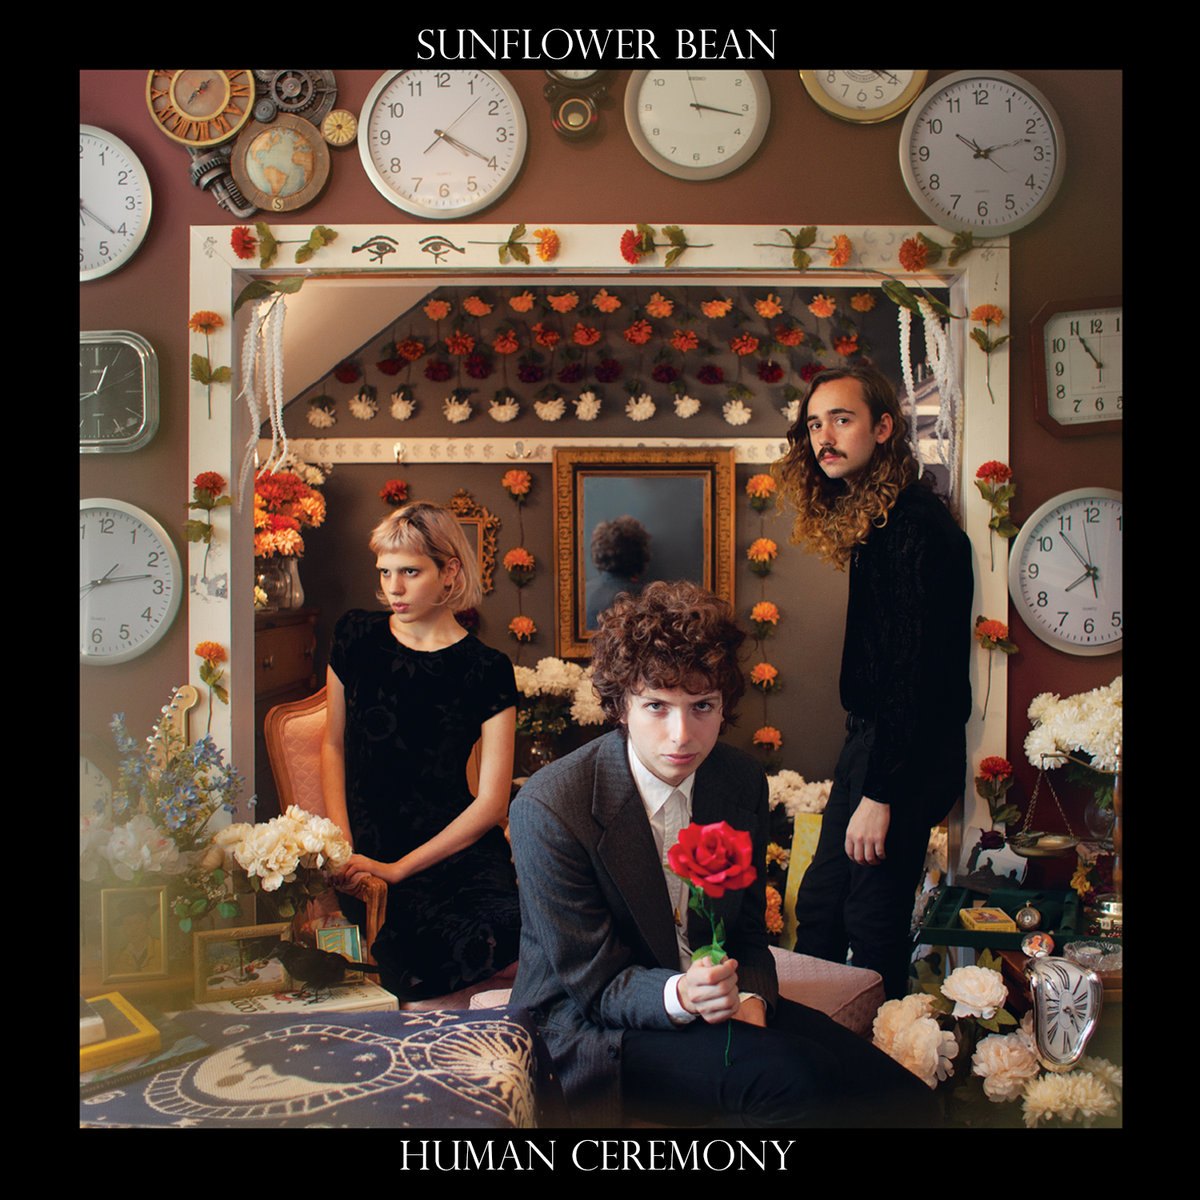 Sunflower Bean Human Ceremony